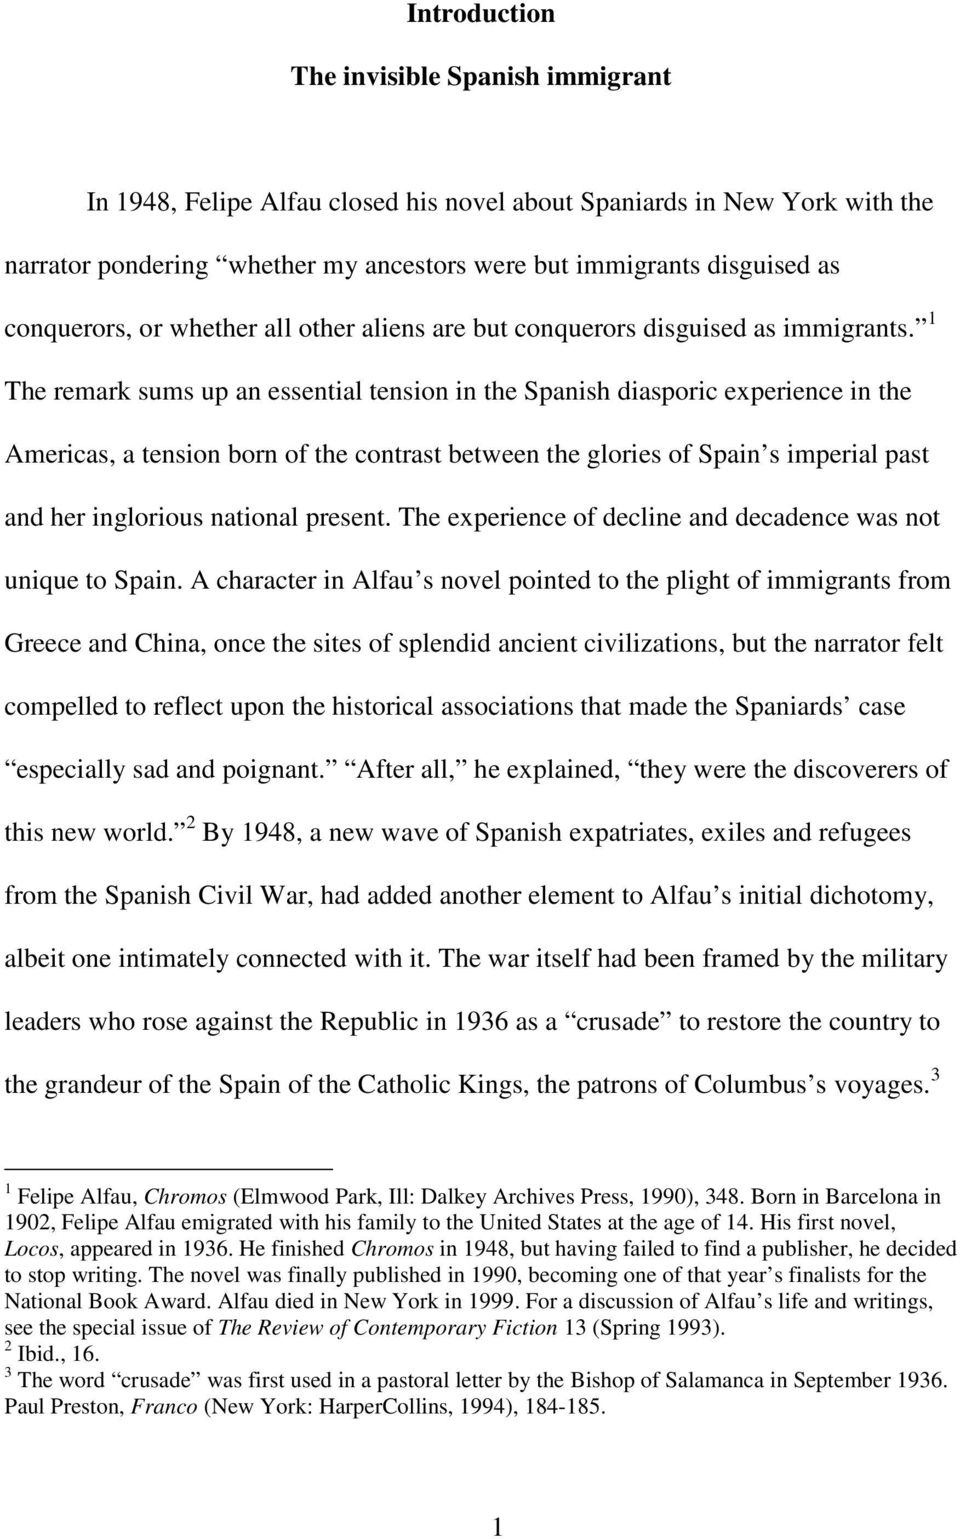 1 The remark sums up an essential tension in the Spanish diasporic experience in the Americas, a tension born of the contrast between the glories of Spain s imperial past and her inglorious national